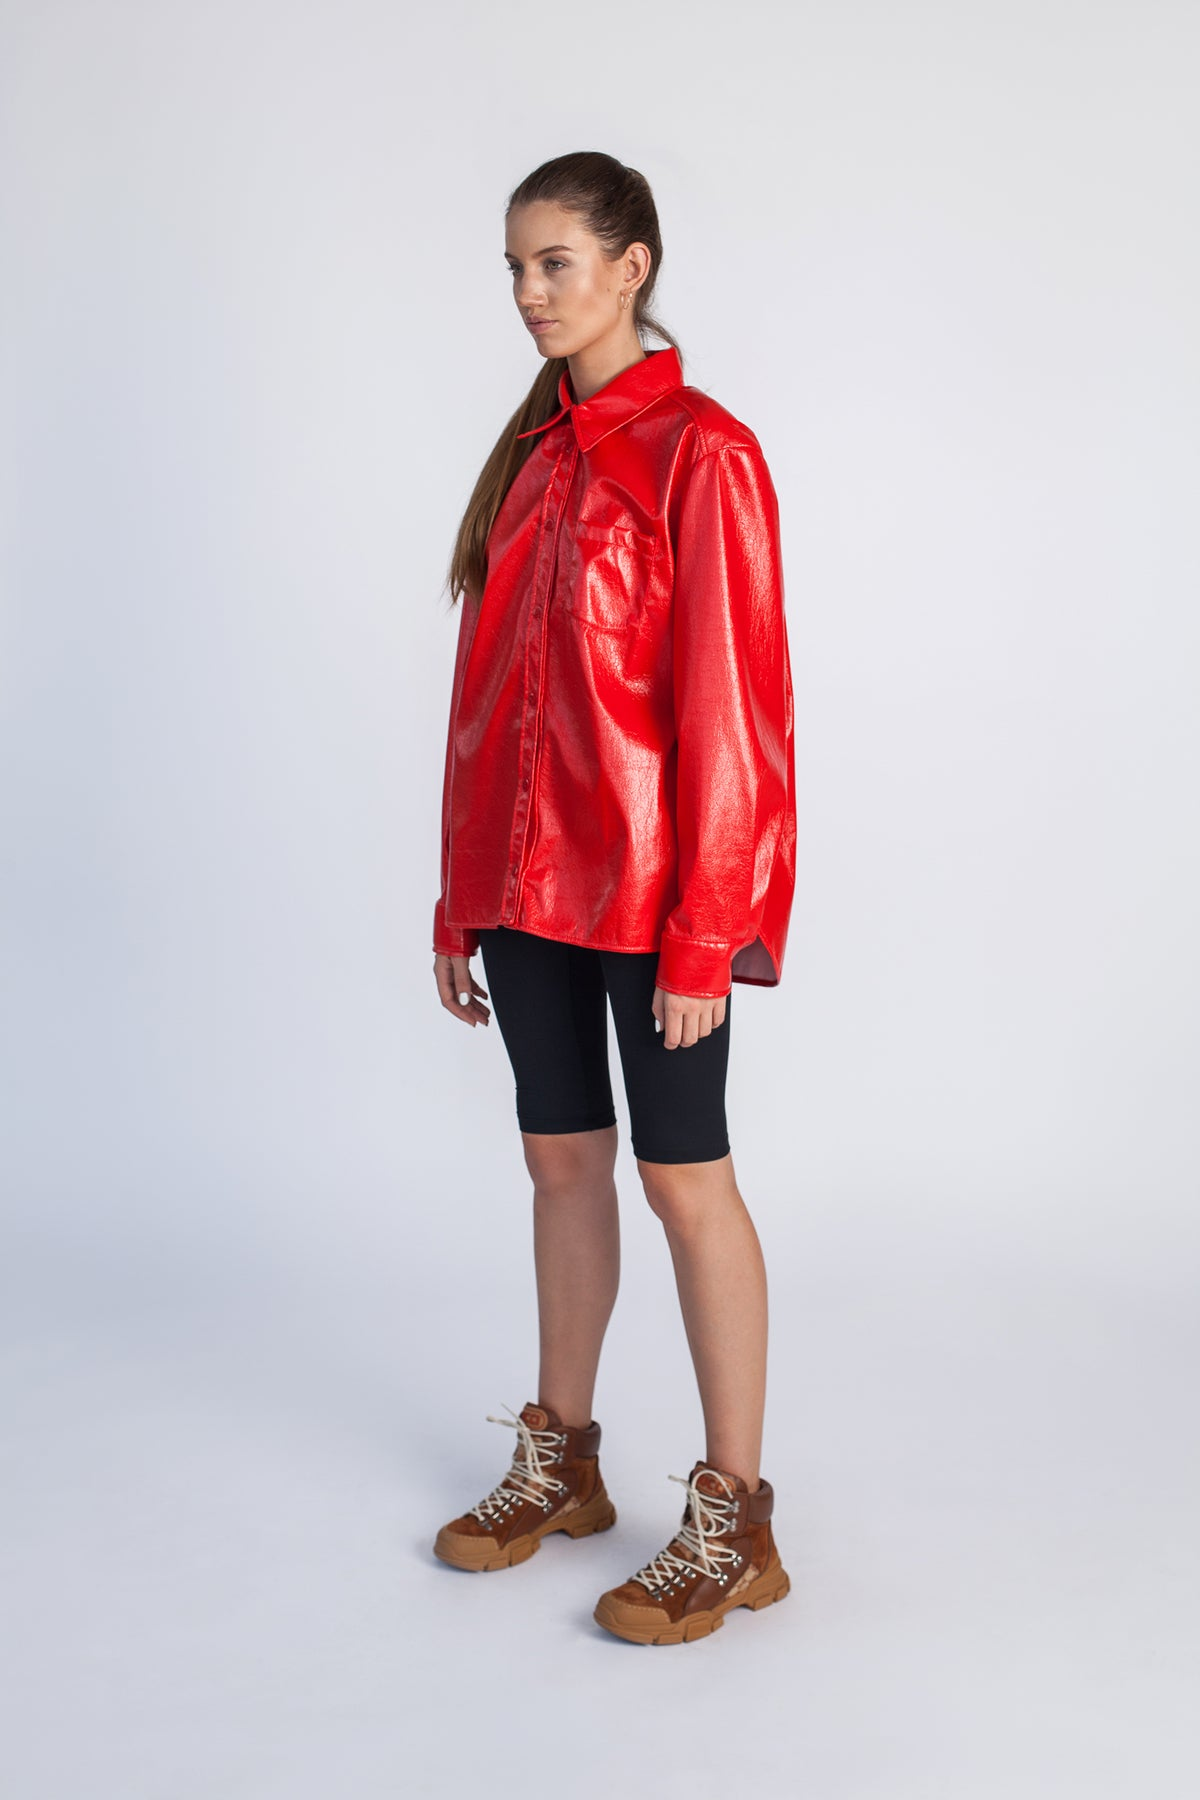 oversize-red-vinyl-latex-shirt-fire-clothing-le-slap.jpg